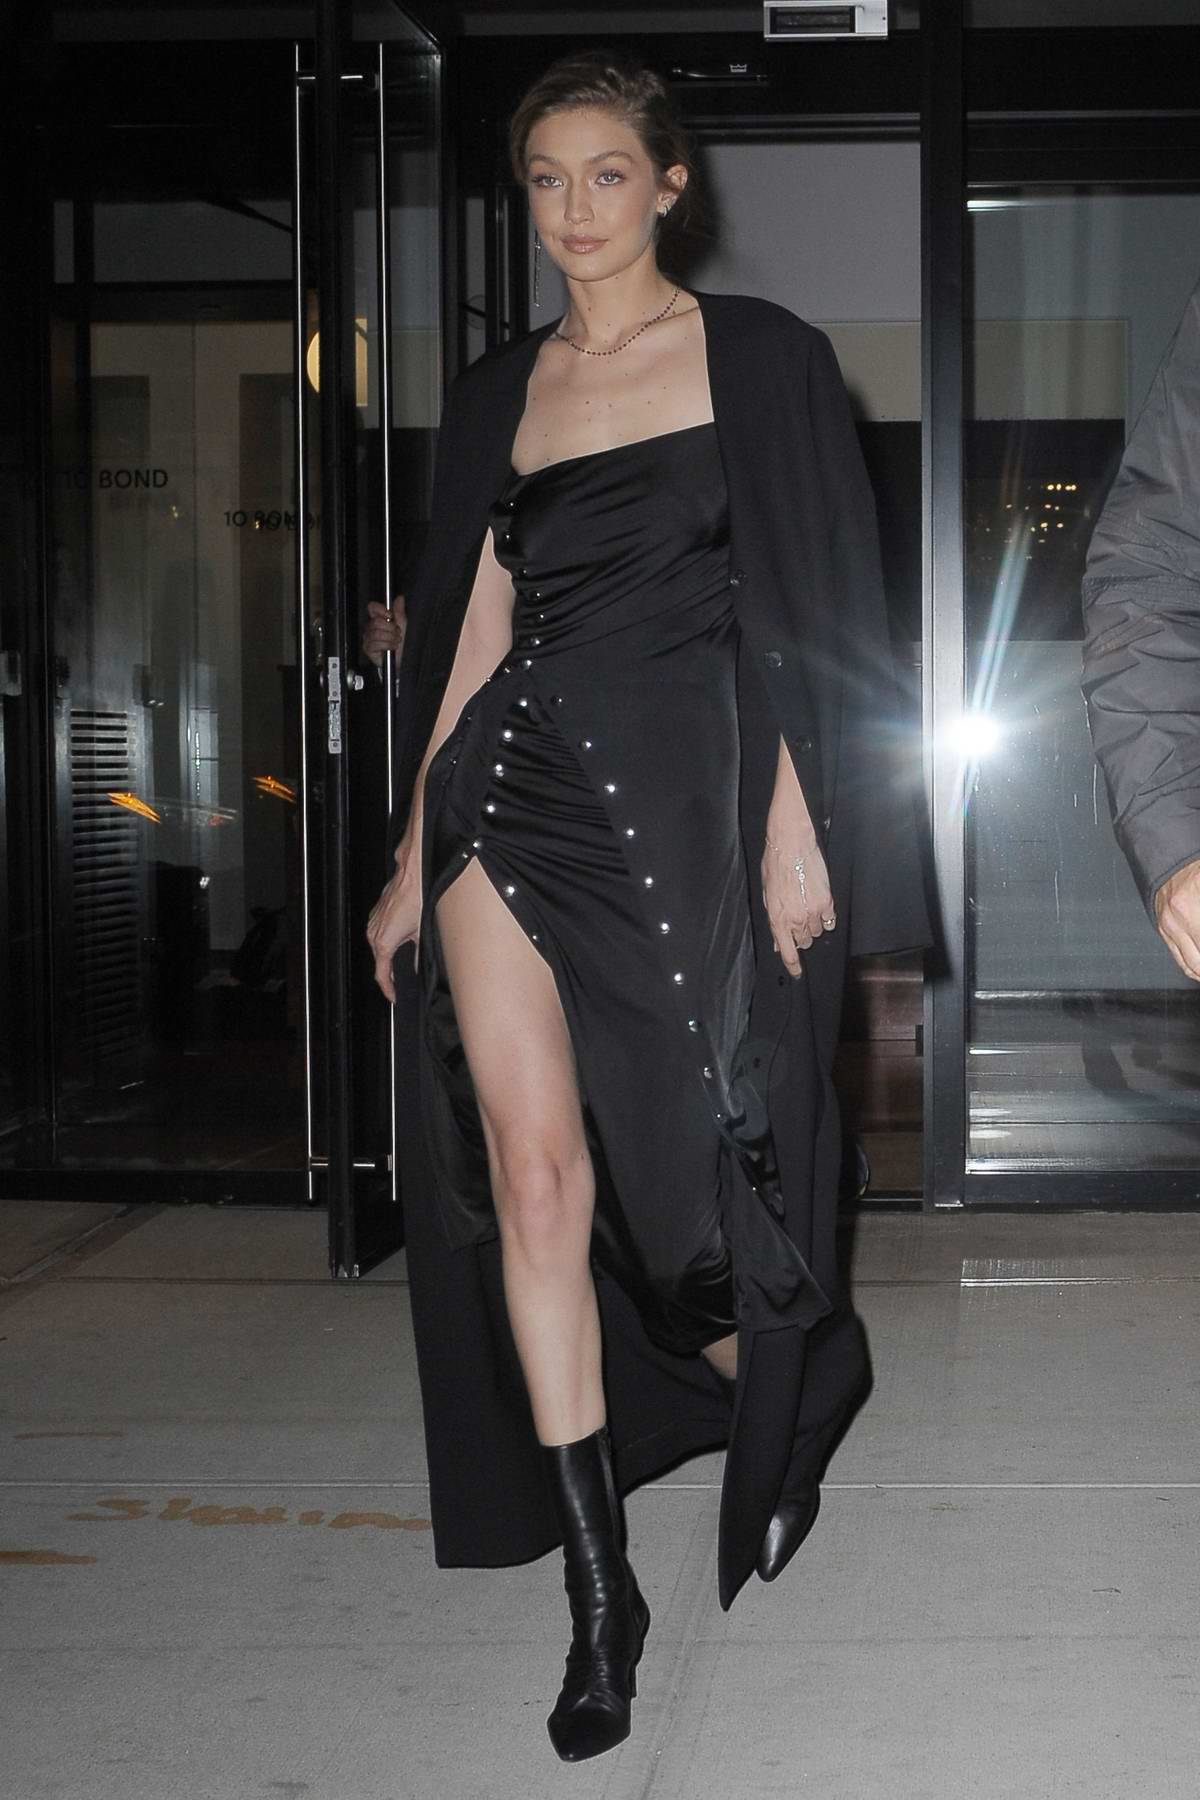 Gigi Hadid in an all black ensemble leaves her apartment in New York City